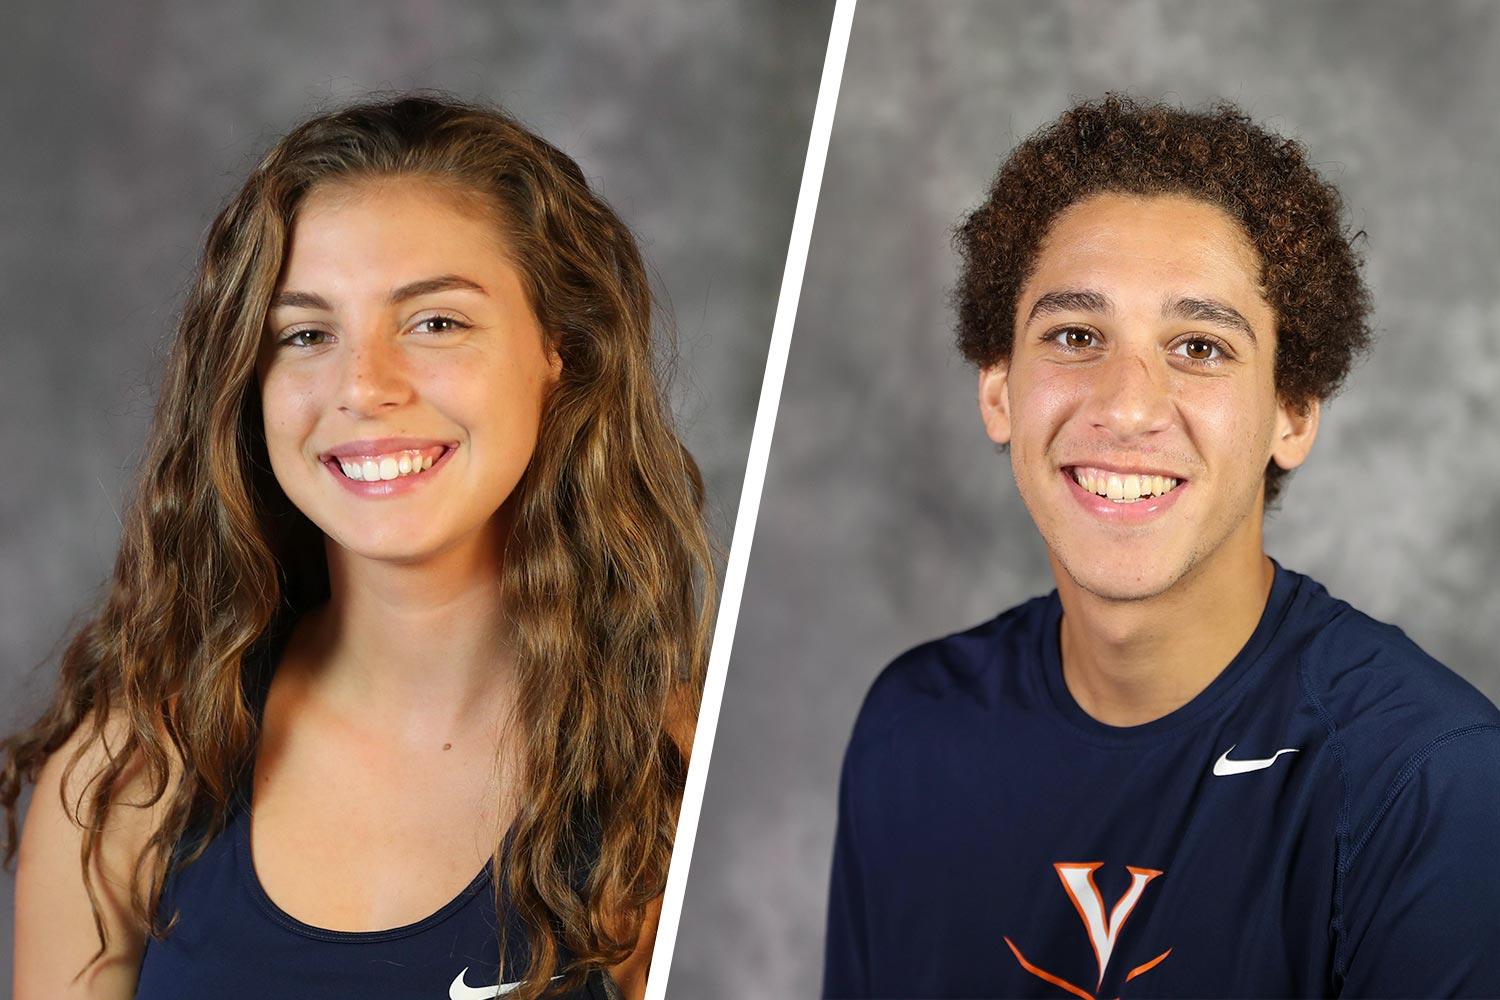 UVA squash players Emma Jinks, left, and Aly Hussein hope to play on the pro tour someday.